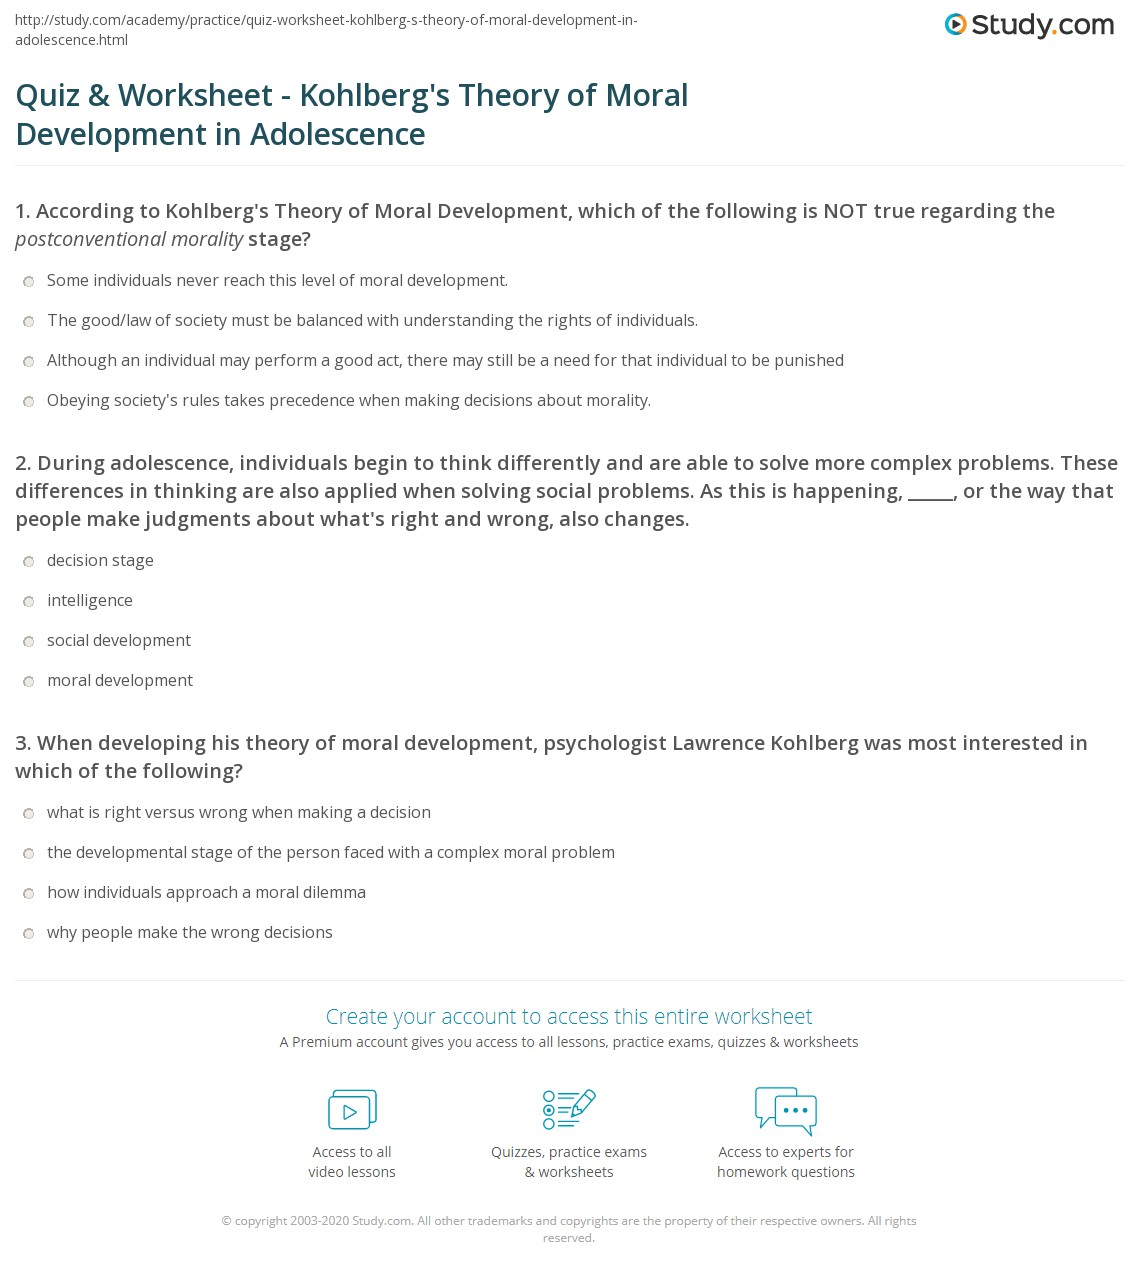 quiz worksheet kohlberg s theory of moral development in 1 during adolescence individuals begin to think differently and are able to solve more complex problems these differences in thinking are also applied